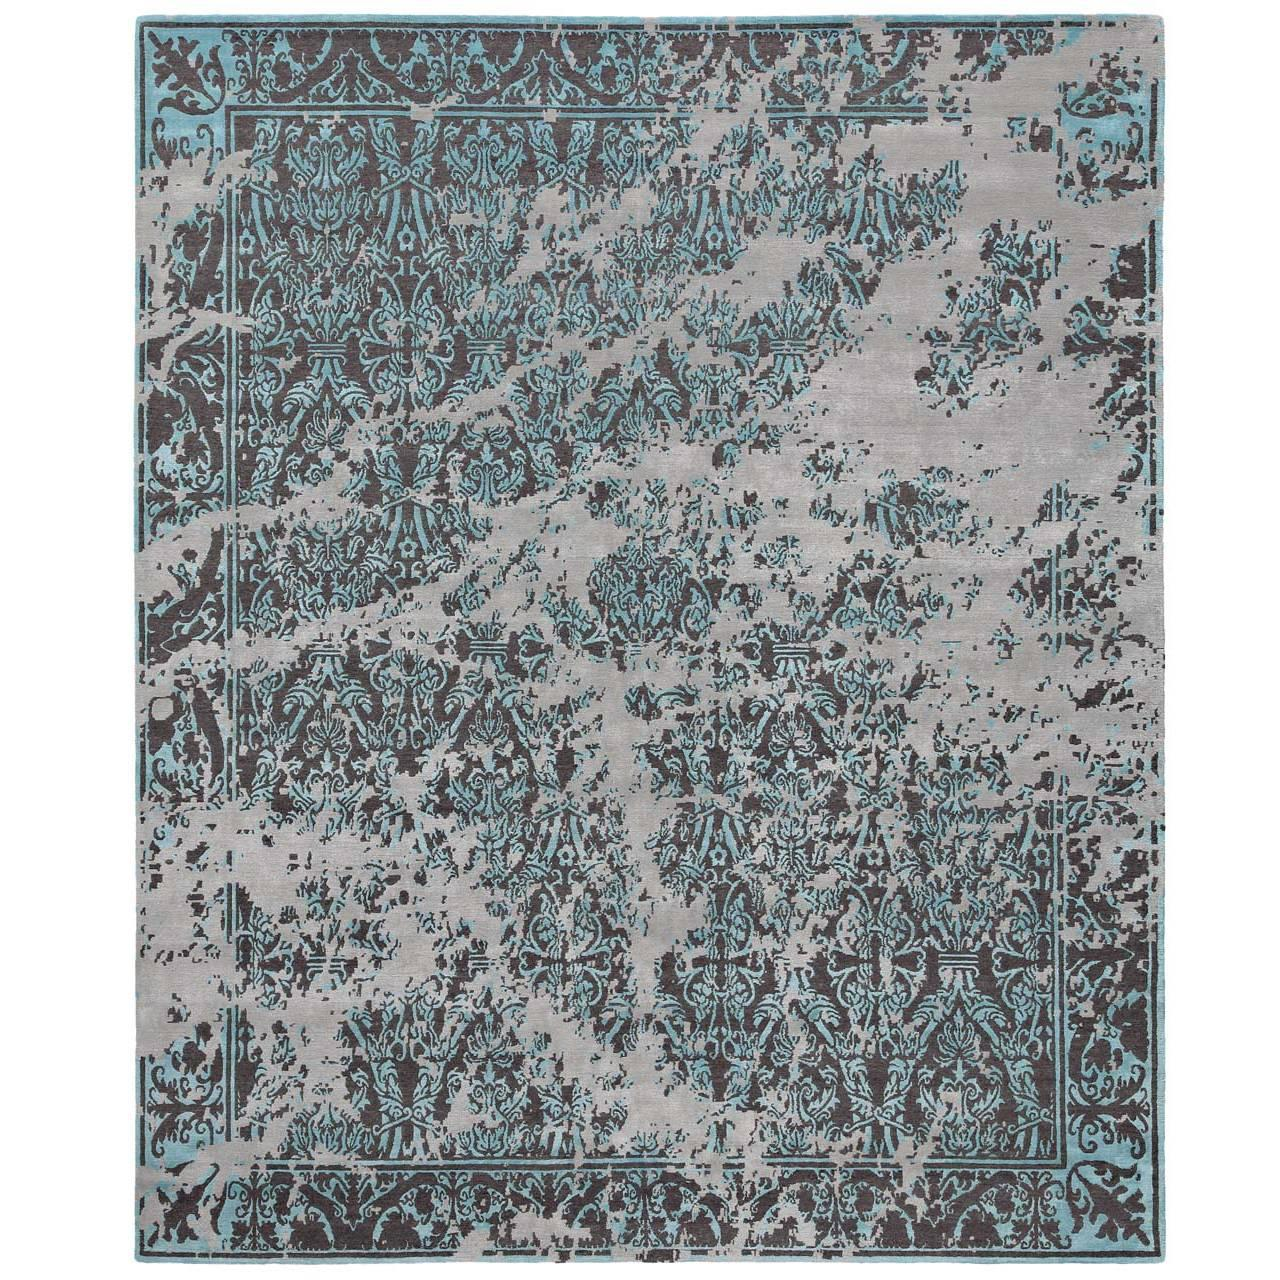 Jan Kath Preise jan kath rugs and carpets 77 for sale at 1stdibs